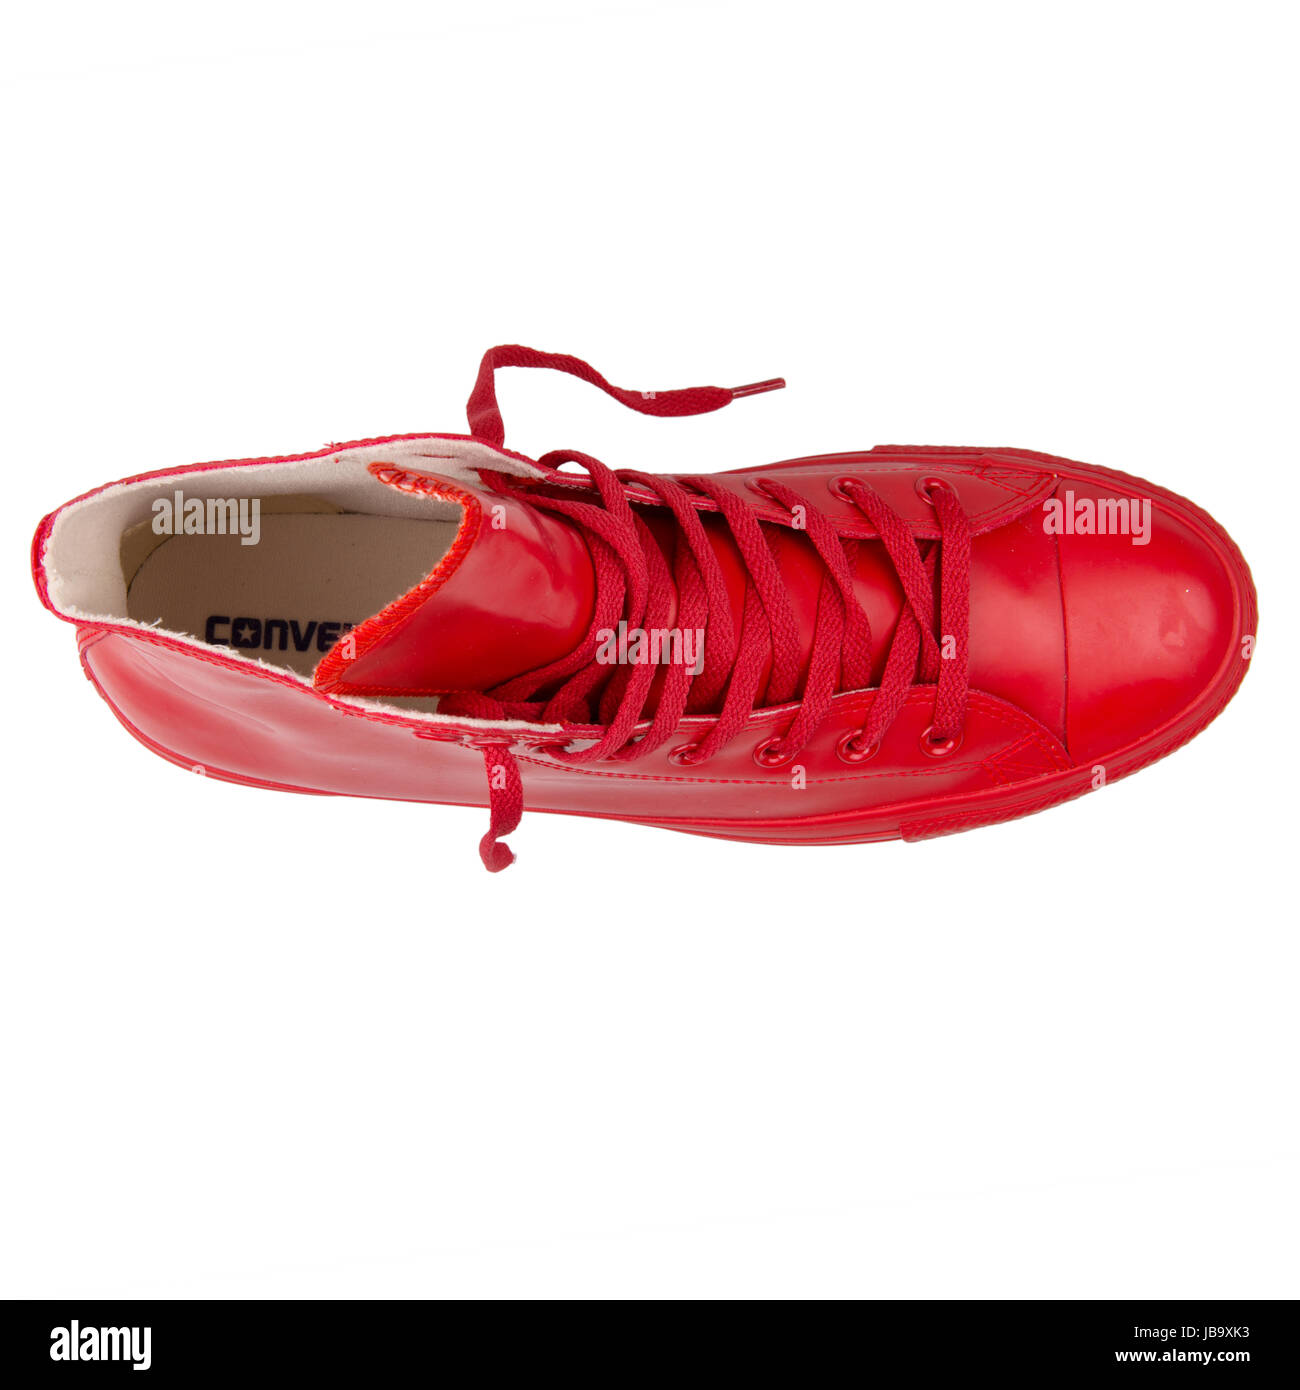 90a428a6e37 Converse Chuck Taylor All Star Hi Red Unisex Shoes - 144744C - Stock Image